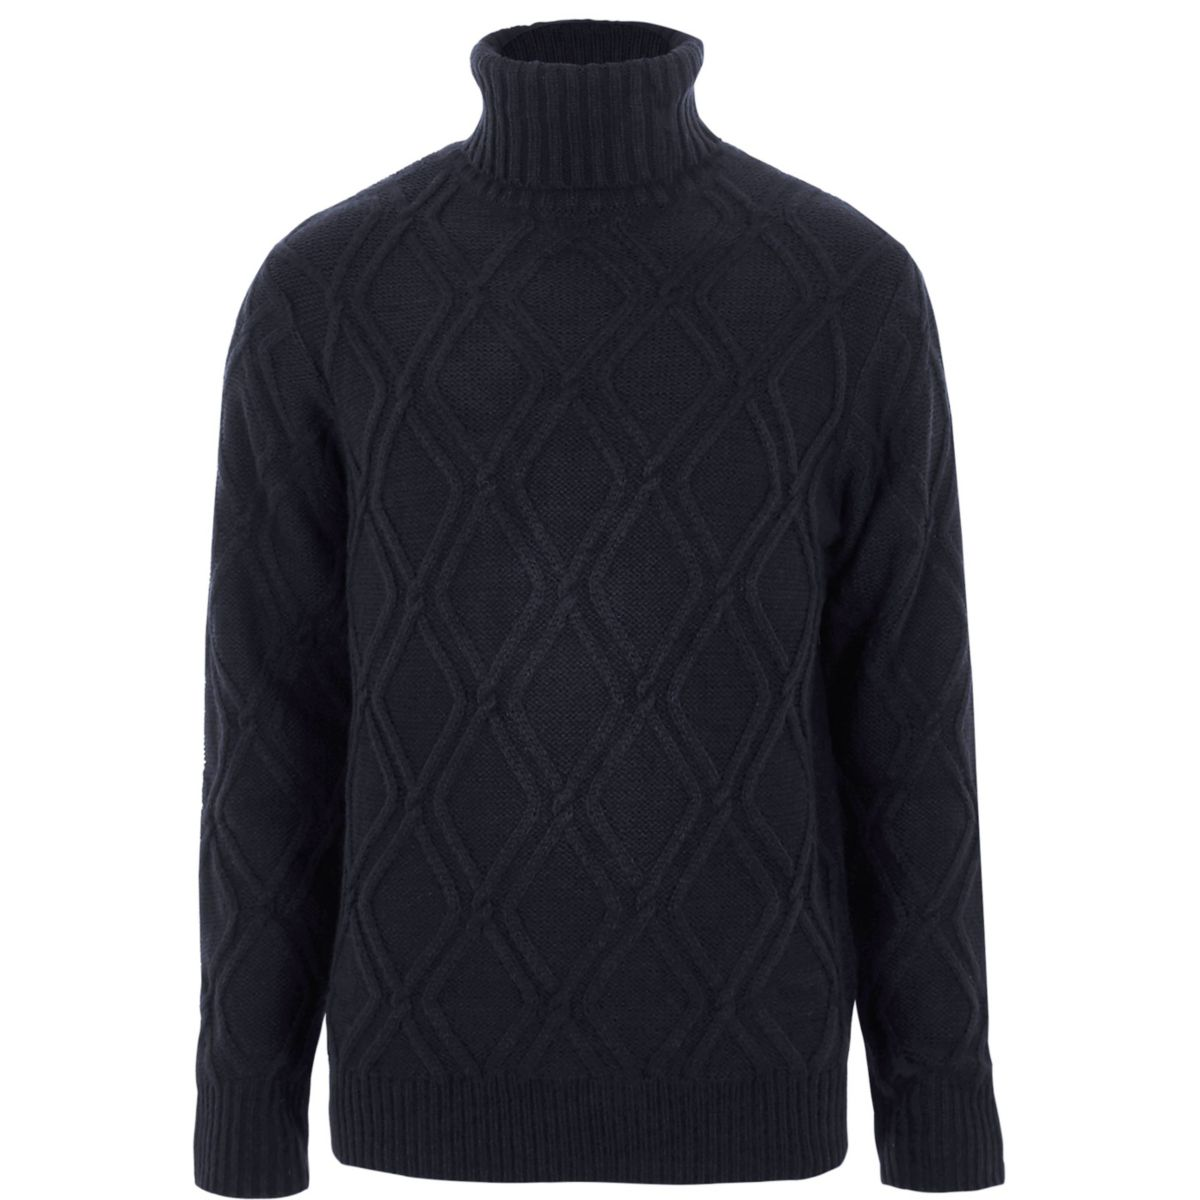 Navy diamond knit roll neck sweater